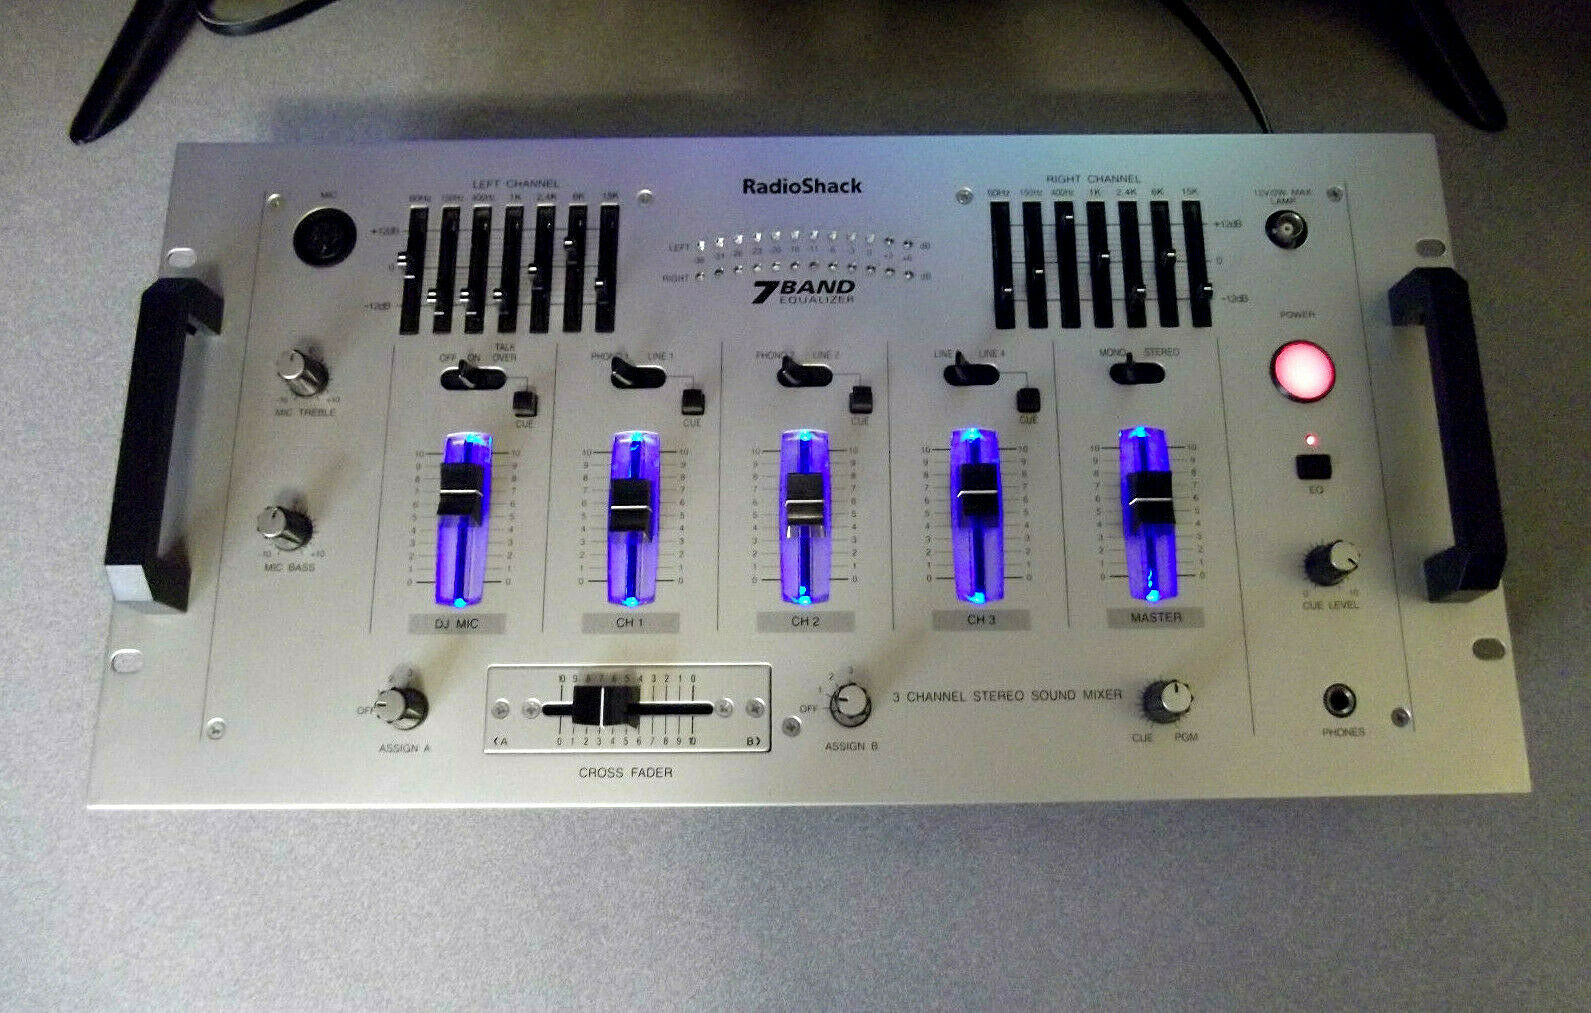 RADIO SHACK ~ 3 CHANNEL STEREO SOUND MIXER ~ Model 32-2057 ~ EQUALIZER DJ 7 BAND. Buy it now for 99.00